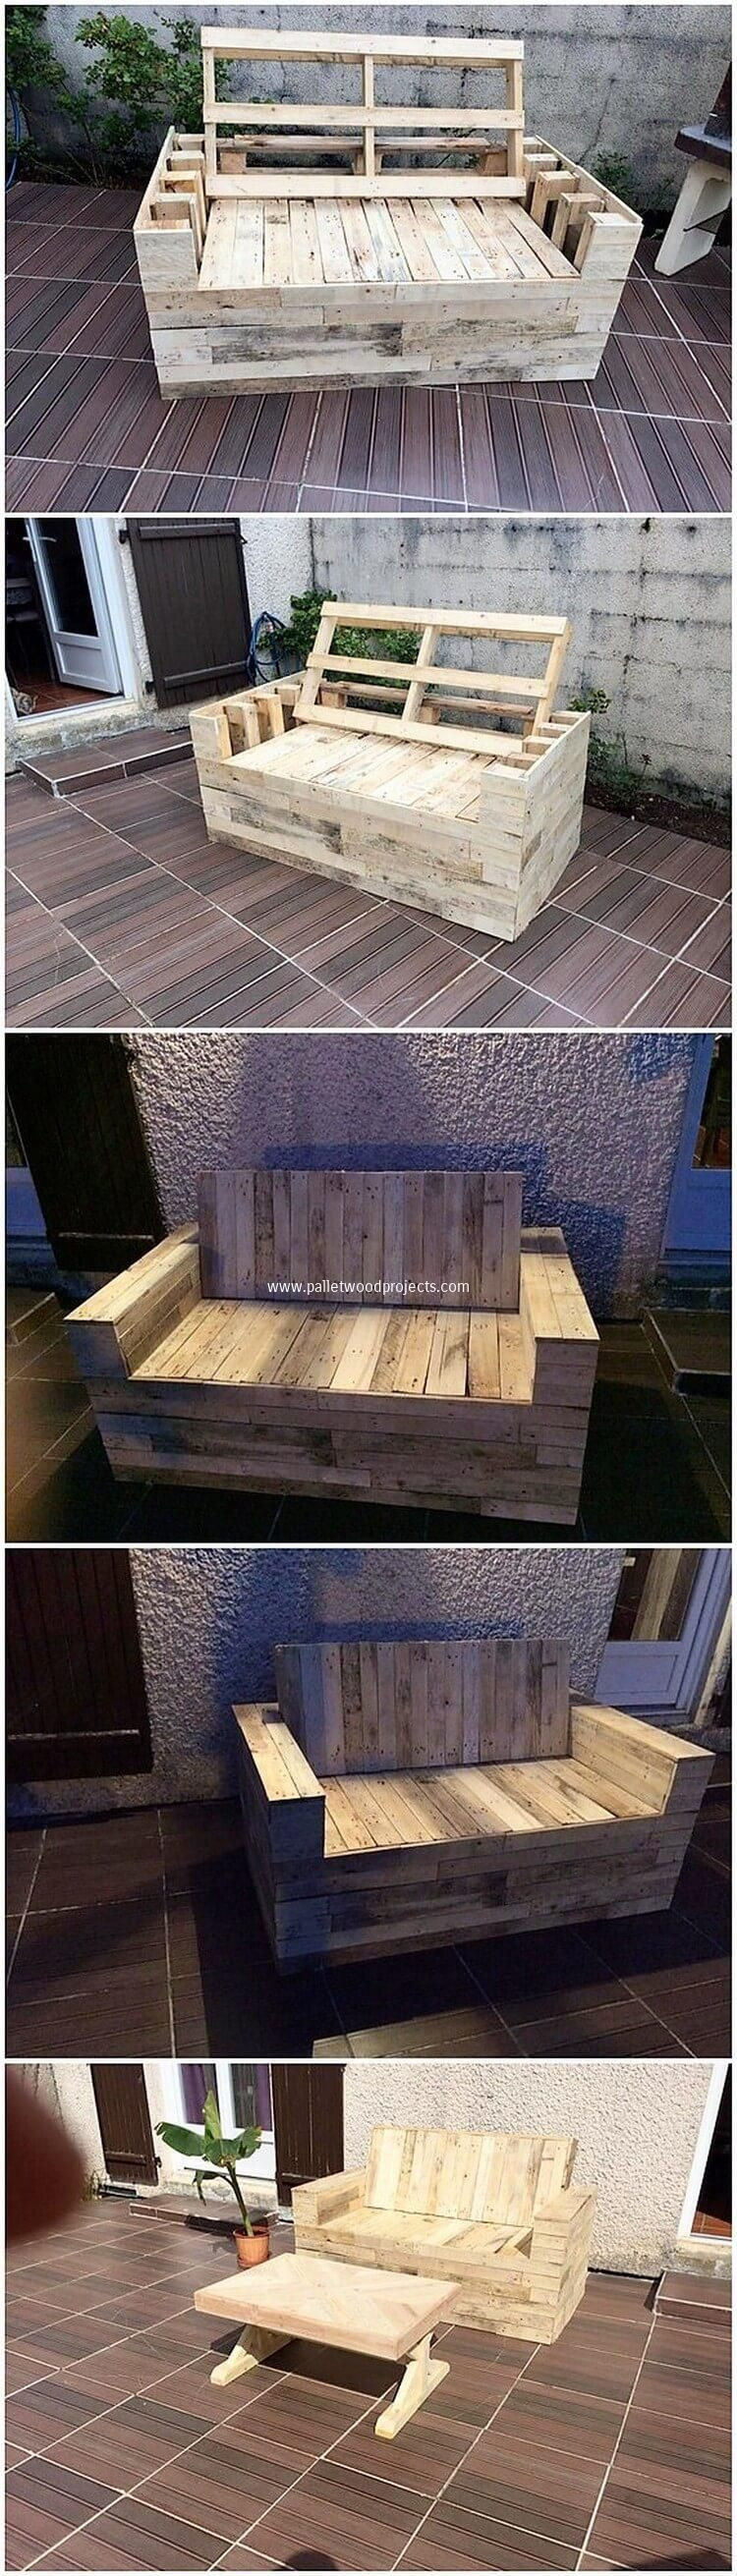 Bring Home This Antique Style Of The Wood Pallet Bench